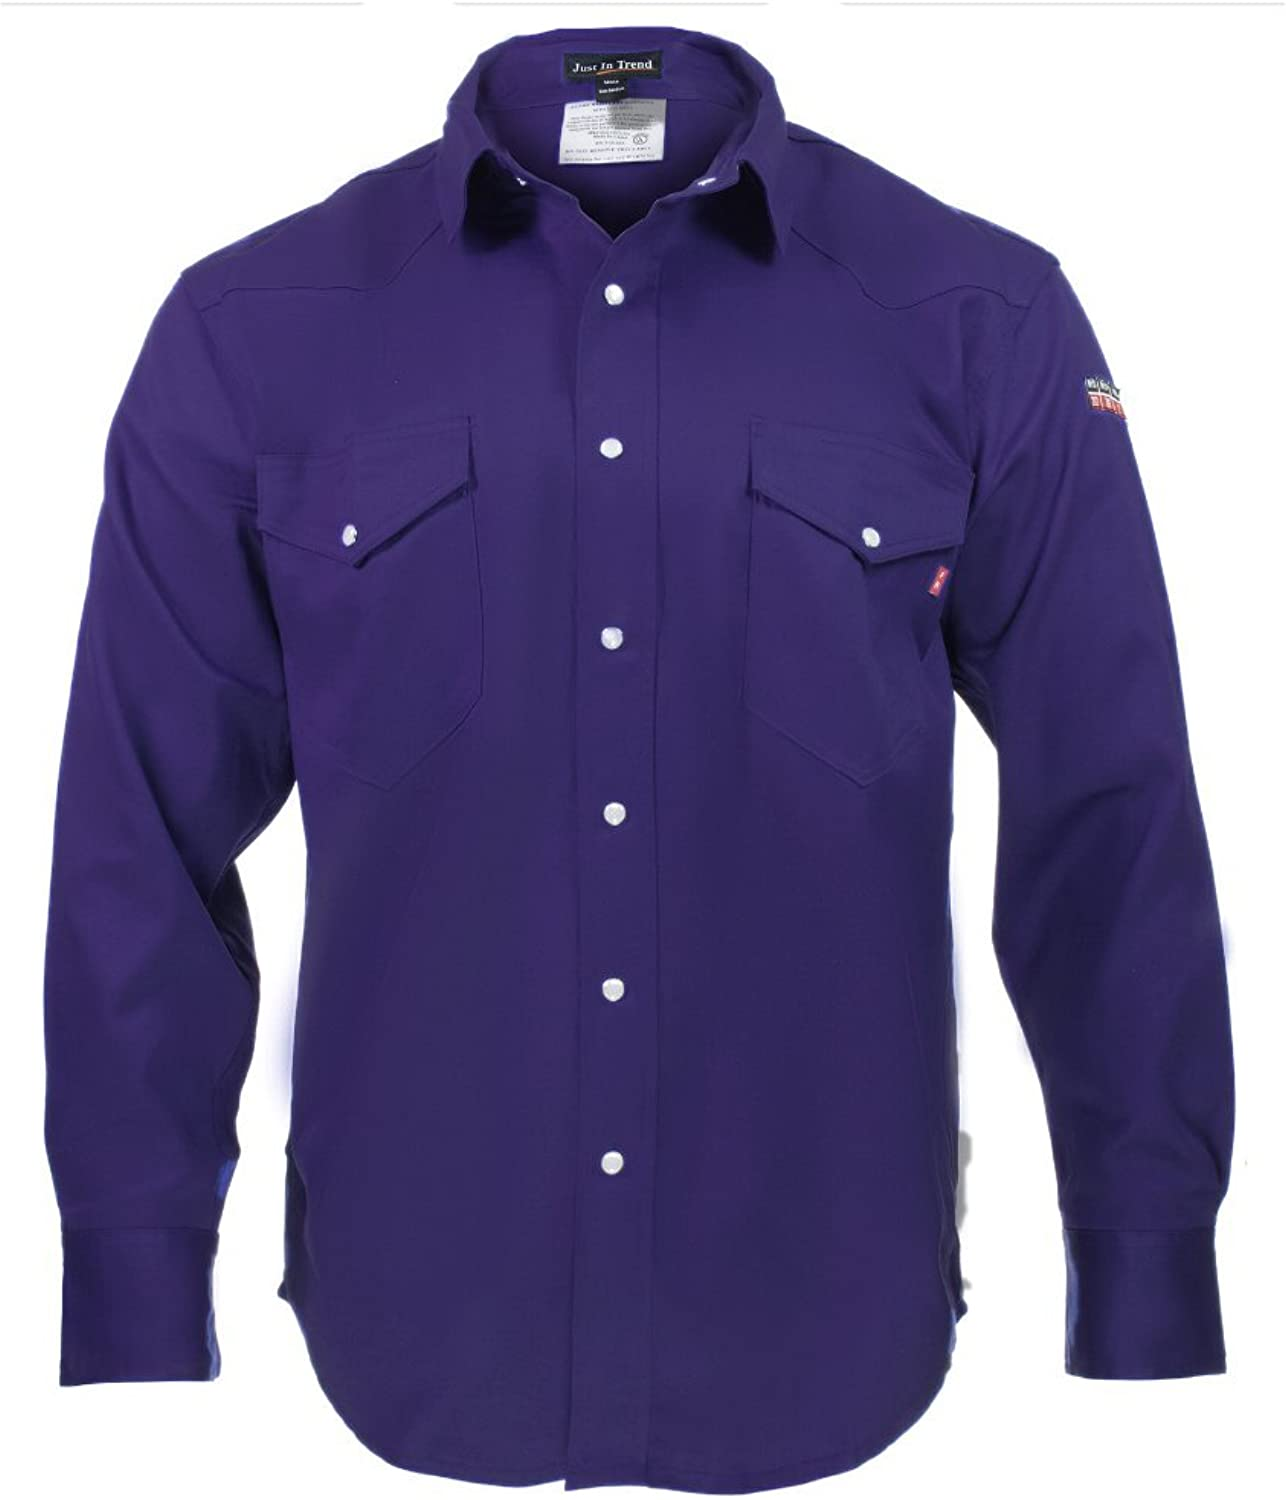 - Just In Trend Flame Resistant FR Shirt Shirt Shirt - 88 12 (Small, Navy bluee) 8c001f